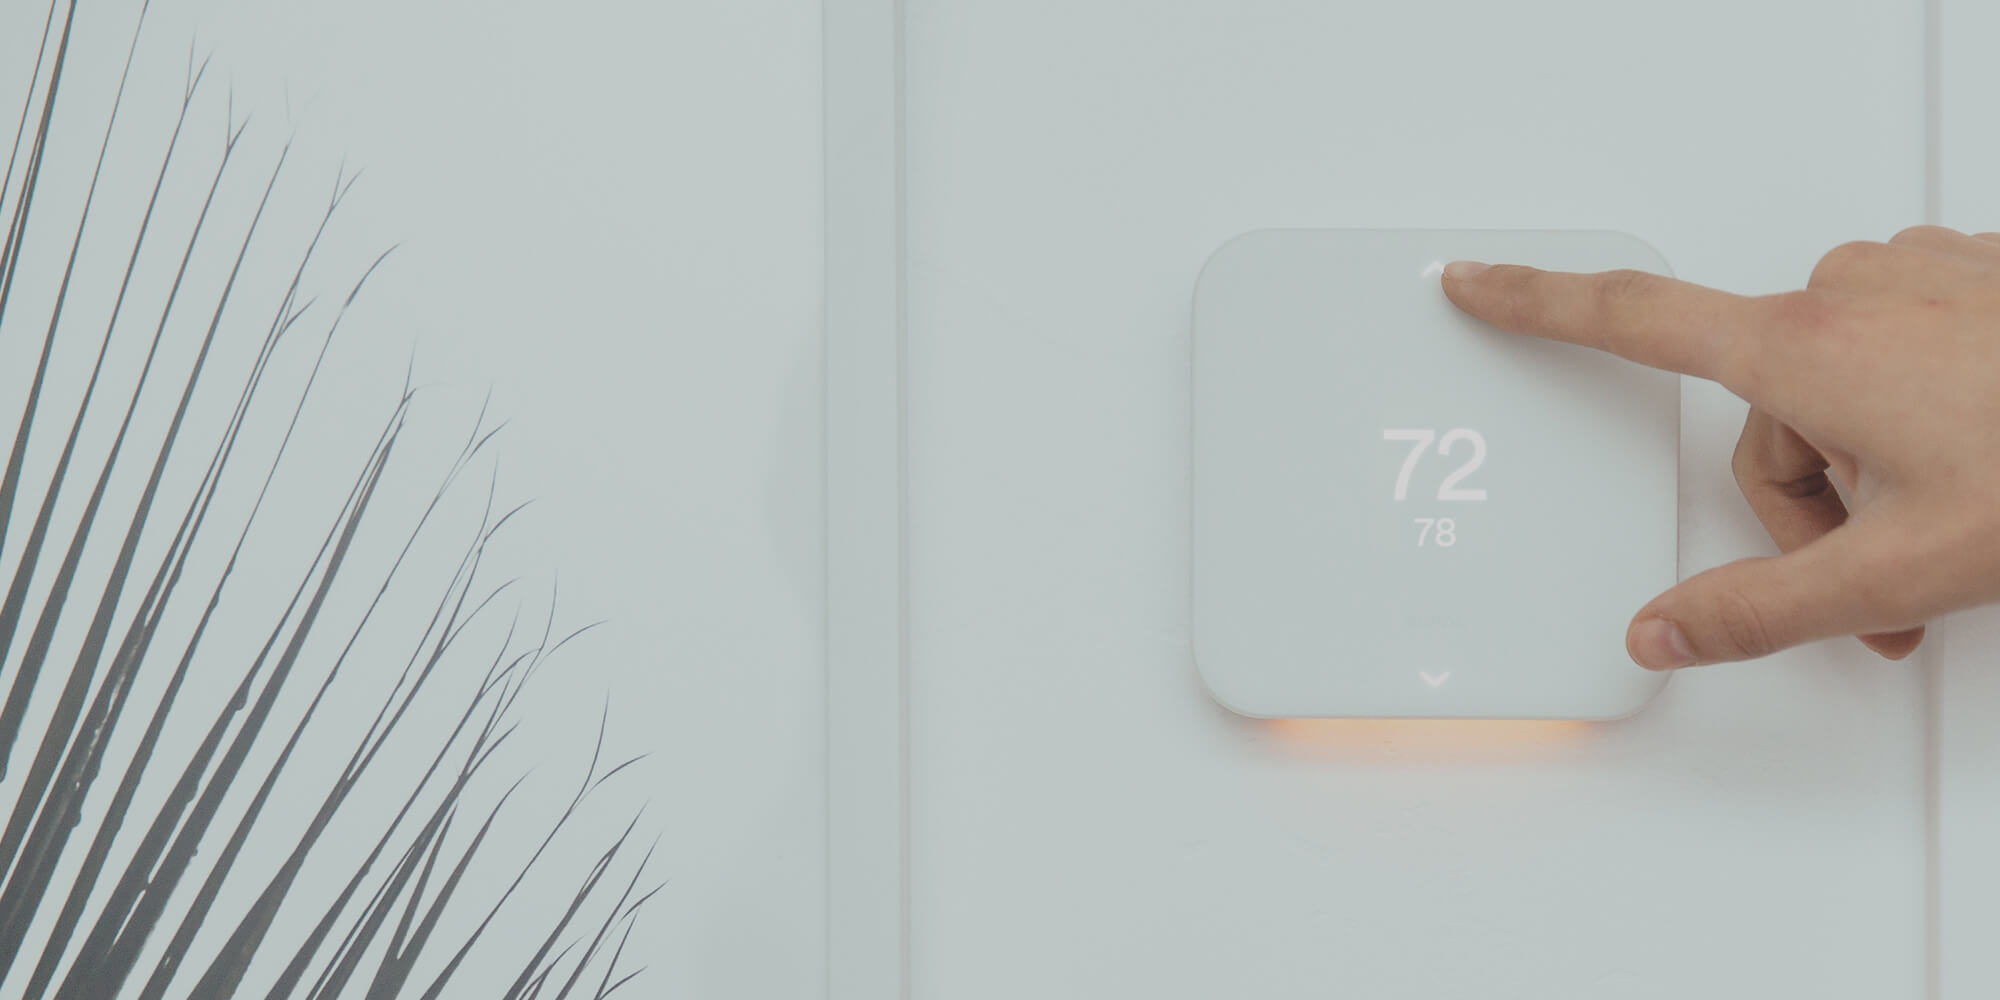 """€�the System Is Fantastic And Easy To Use It's Nice To Have Control Of My  Thermostat Without Having To Get Out Of Bed…"""""""